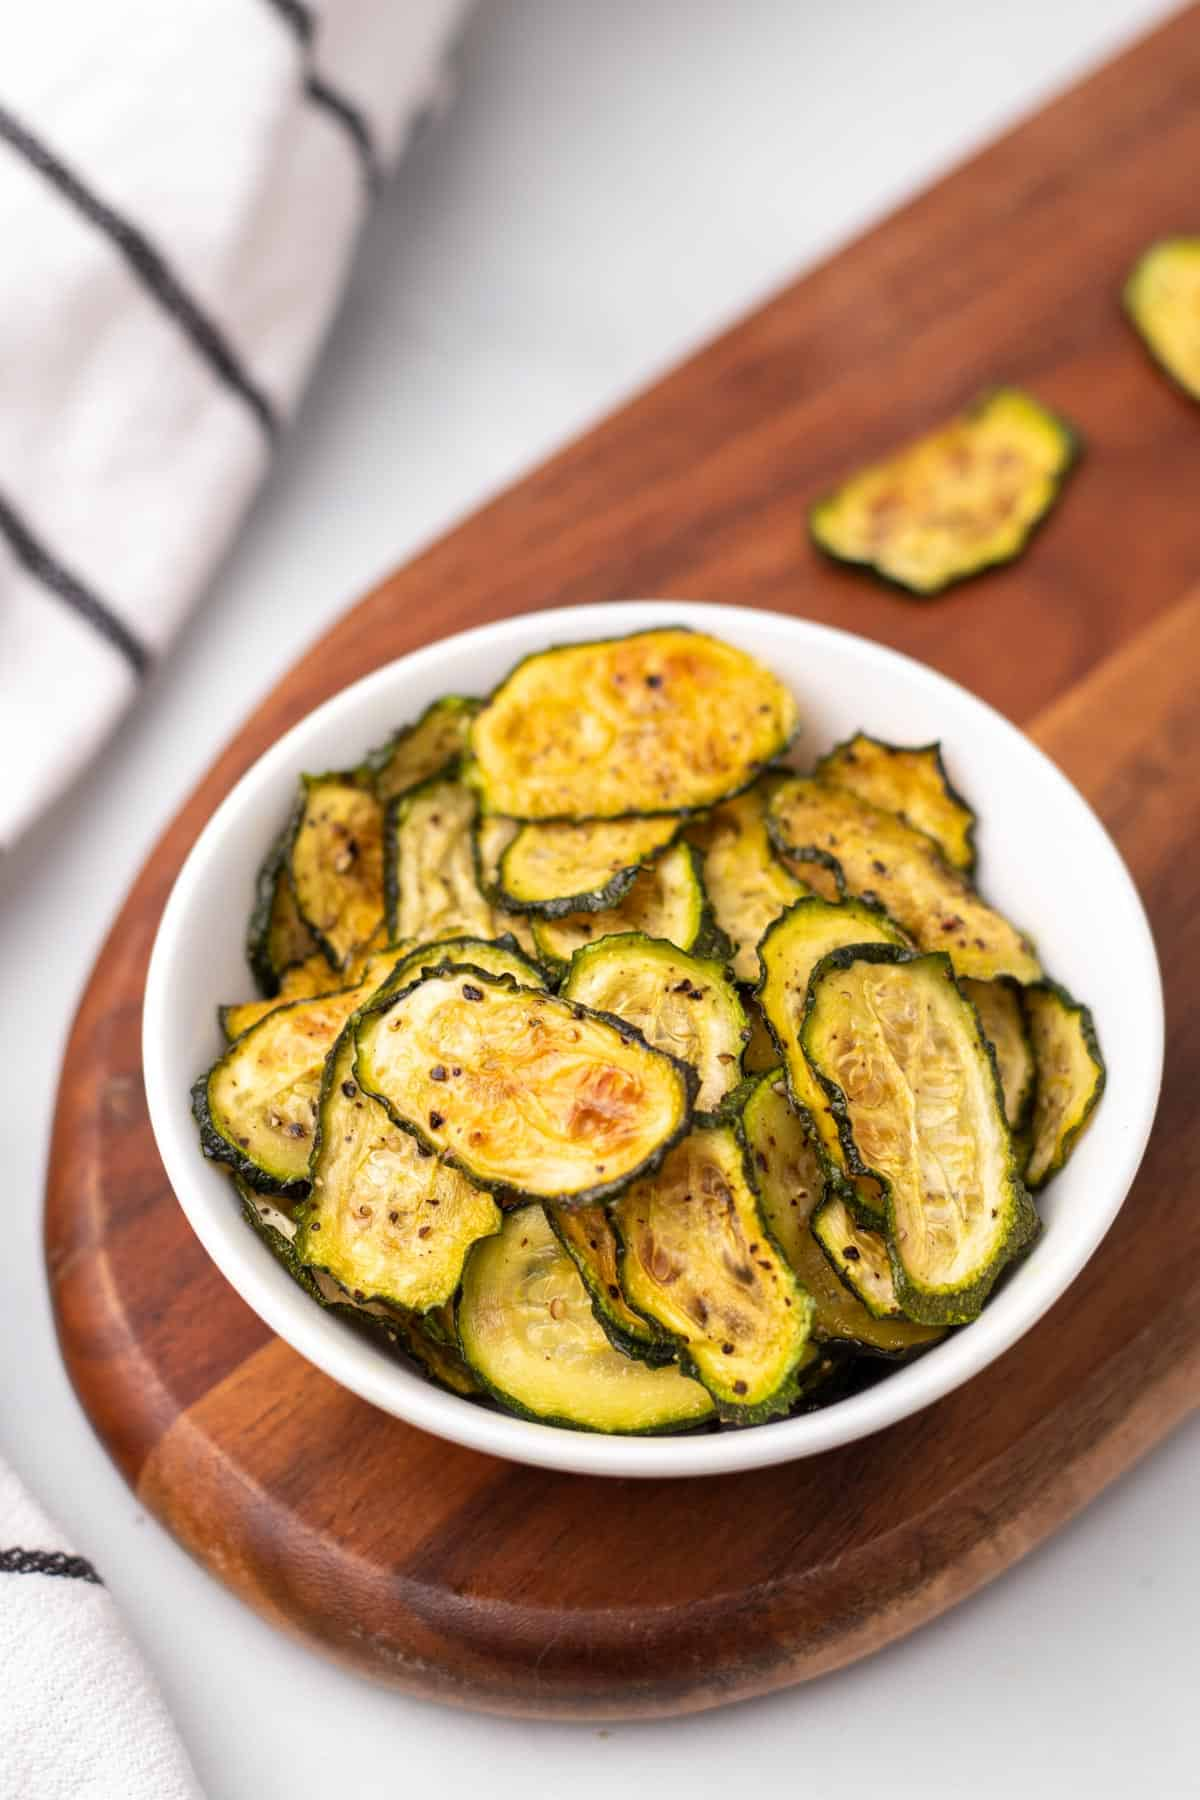 Bowl of baked zucchini chips on wooden board